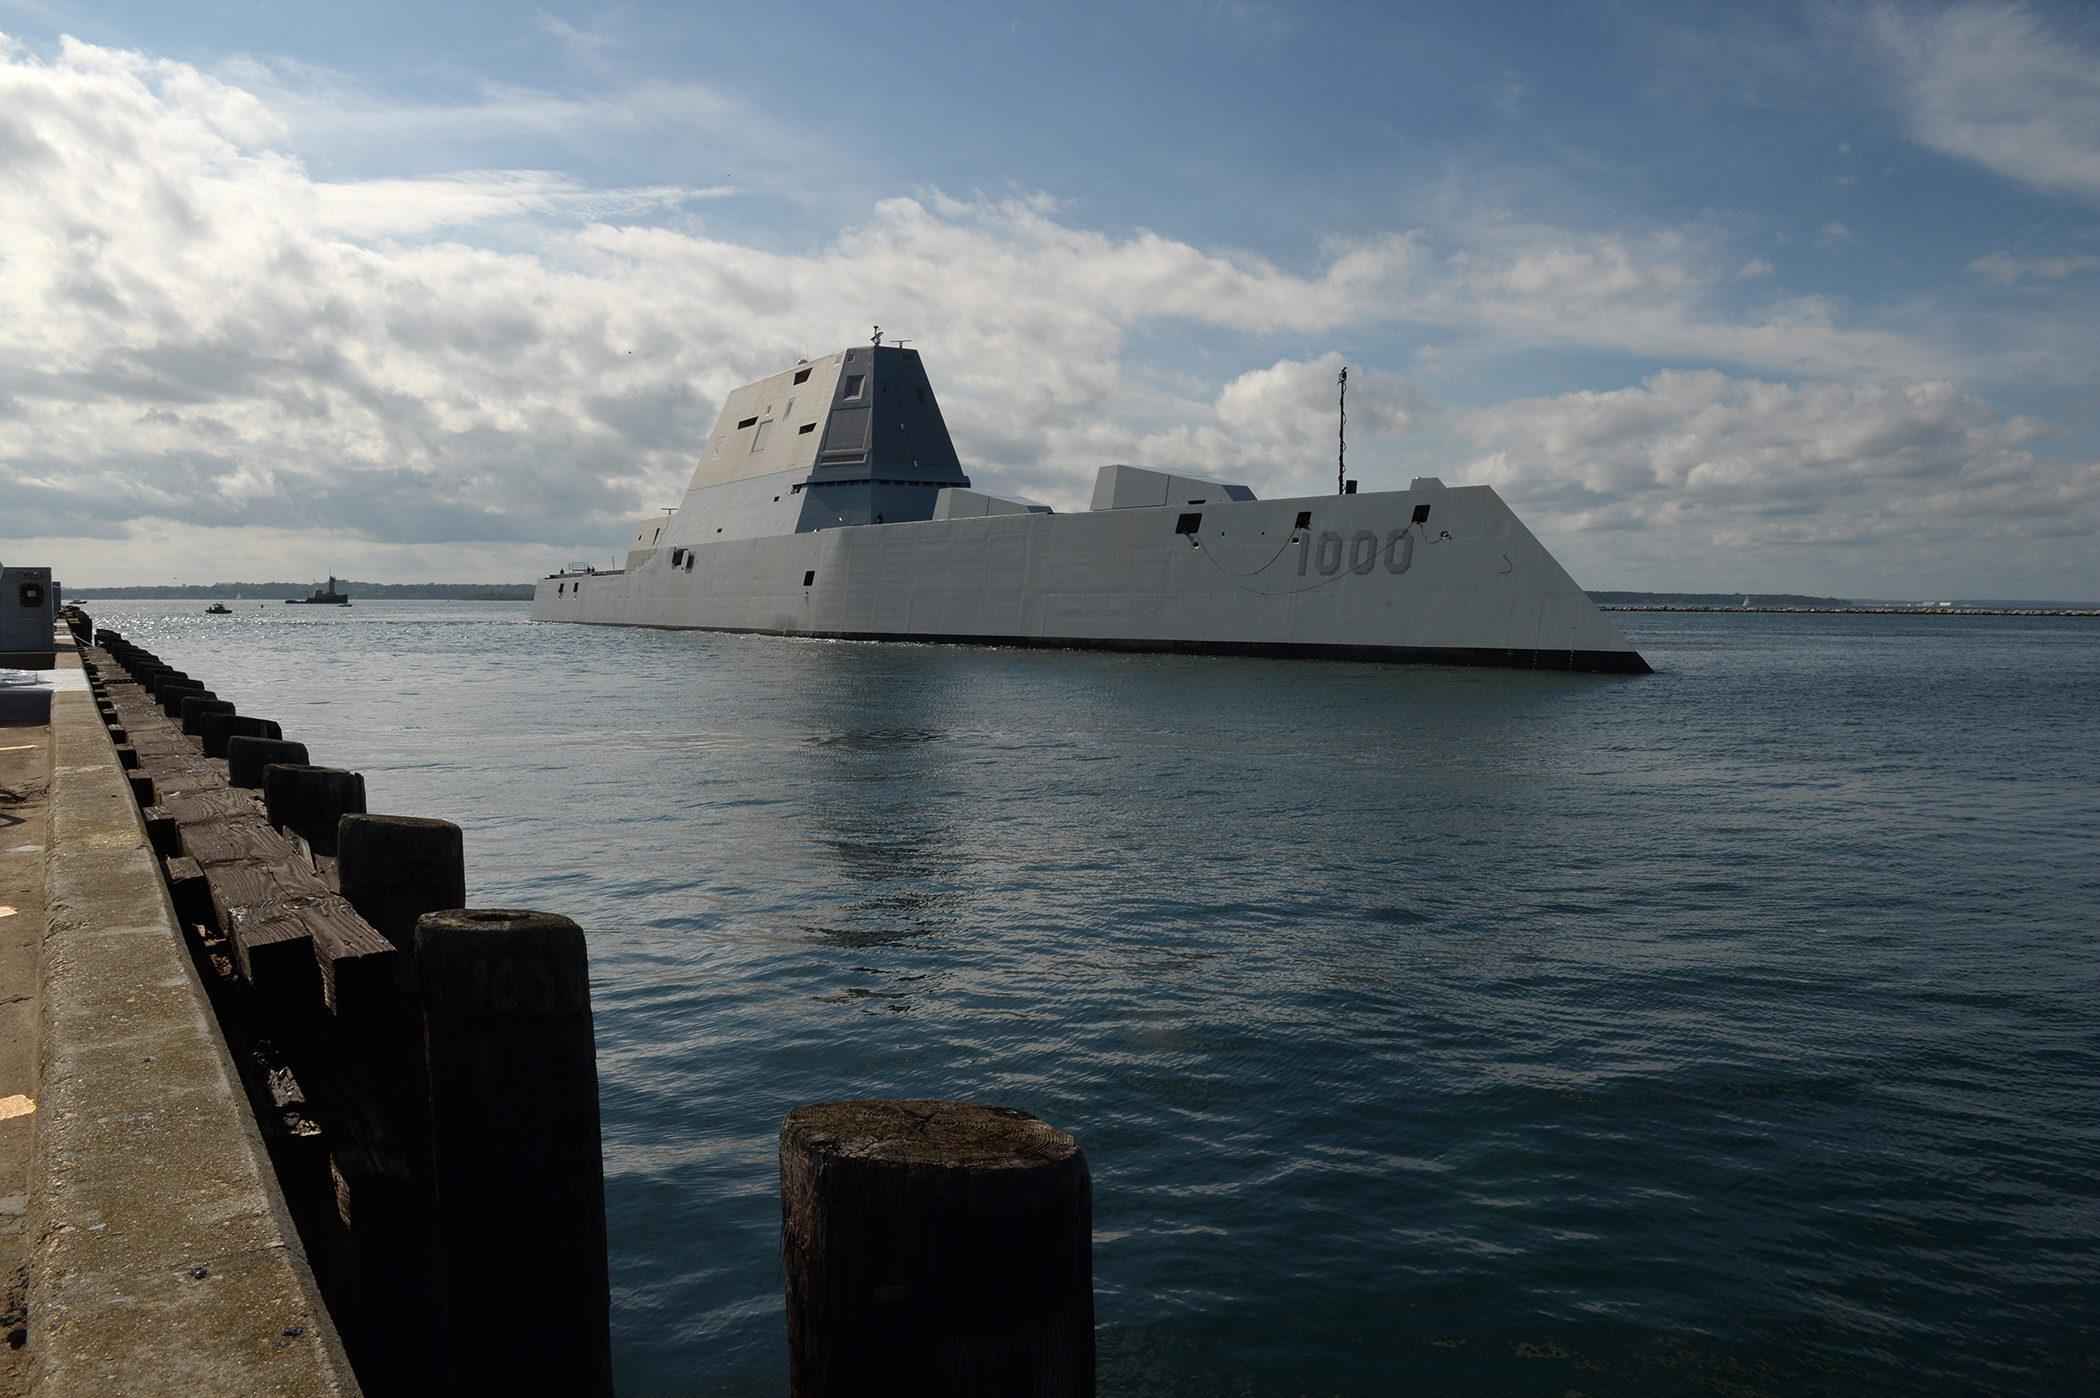 Guided-missile destroyer Zumwalt (DDG-1000) arrives at Naval Station Newport on Sept. 8, 2016. US Navy Photo